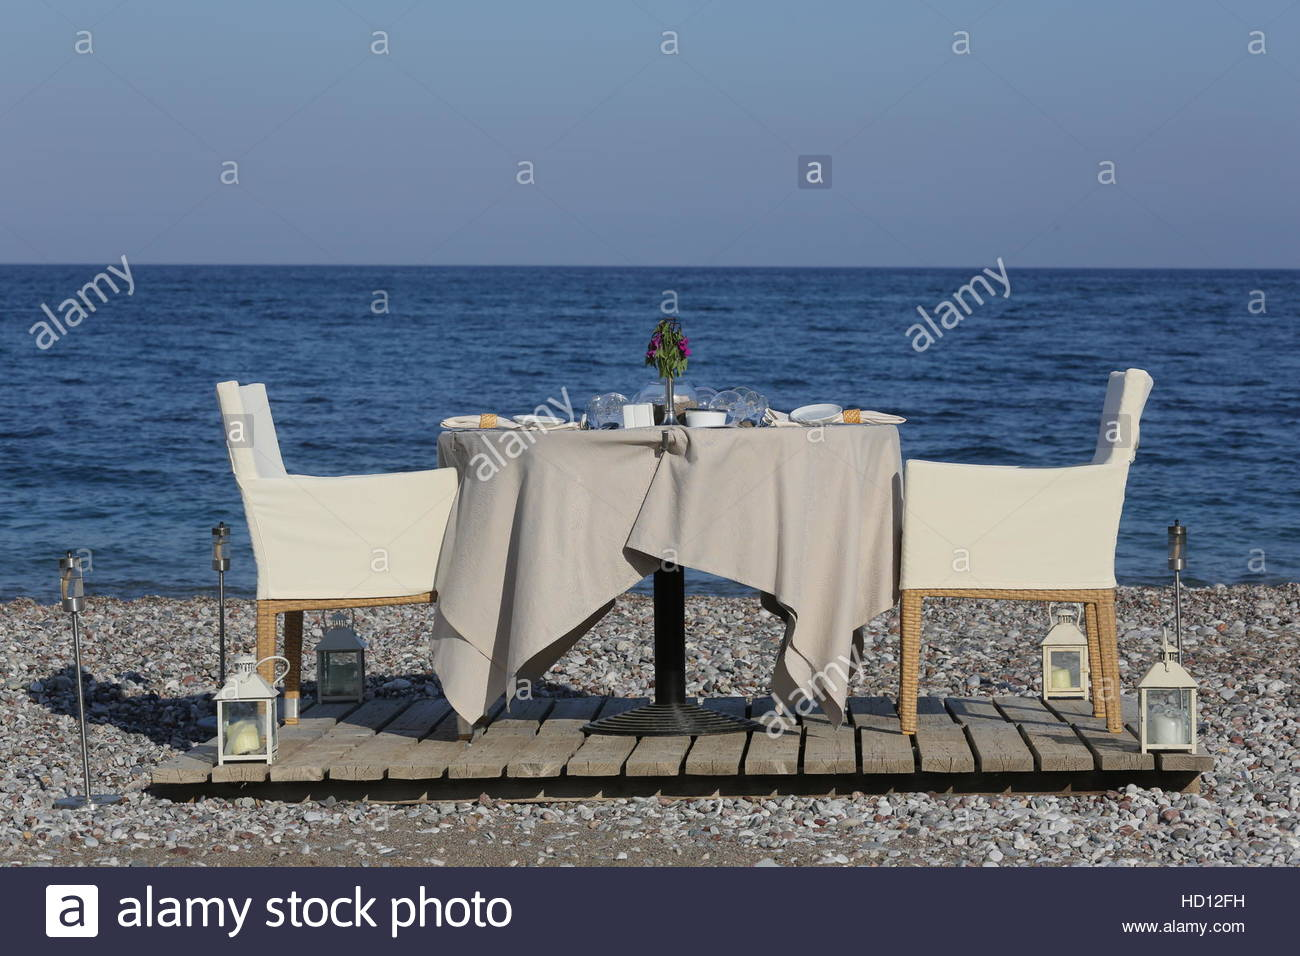 Dinner Table Set For A Romantic Dinner For Two By The Sea Shore